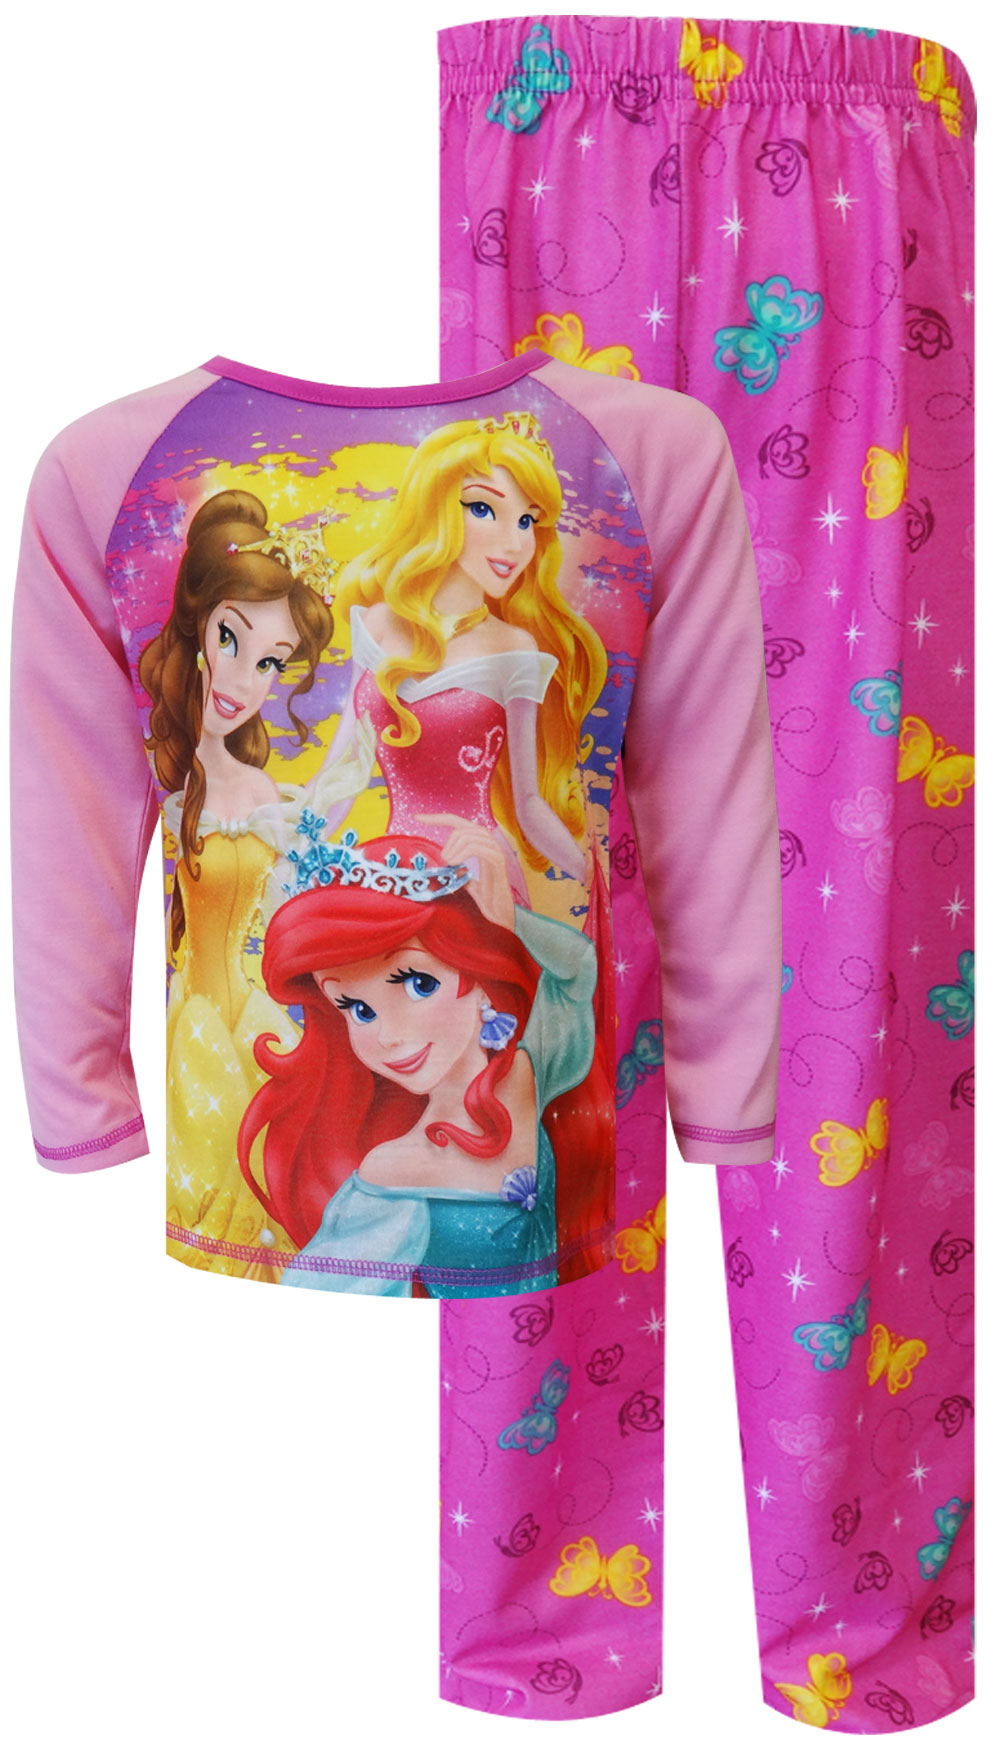 Image of Disney Princesses Ariel, Sleeping Beauty and Belle Pajamas for girls